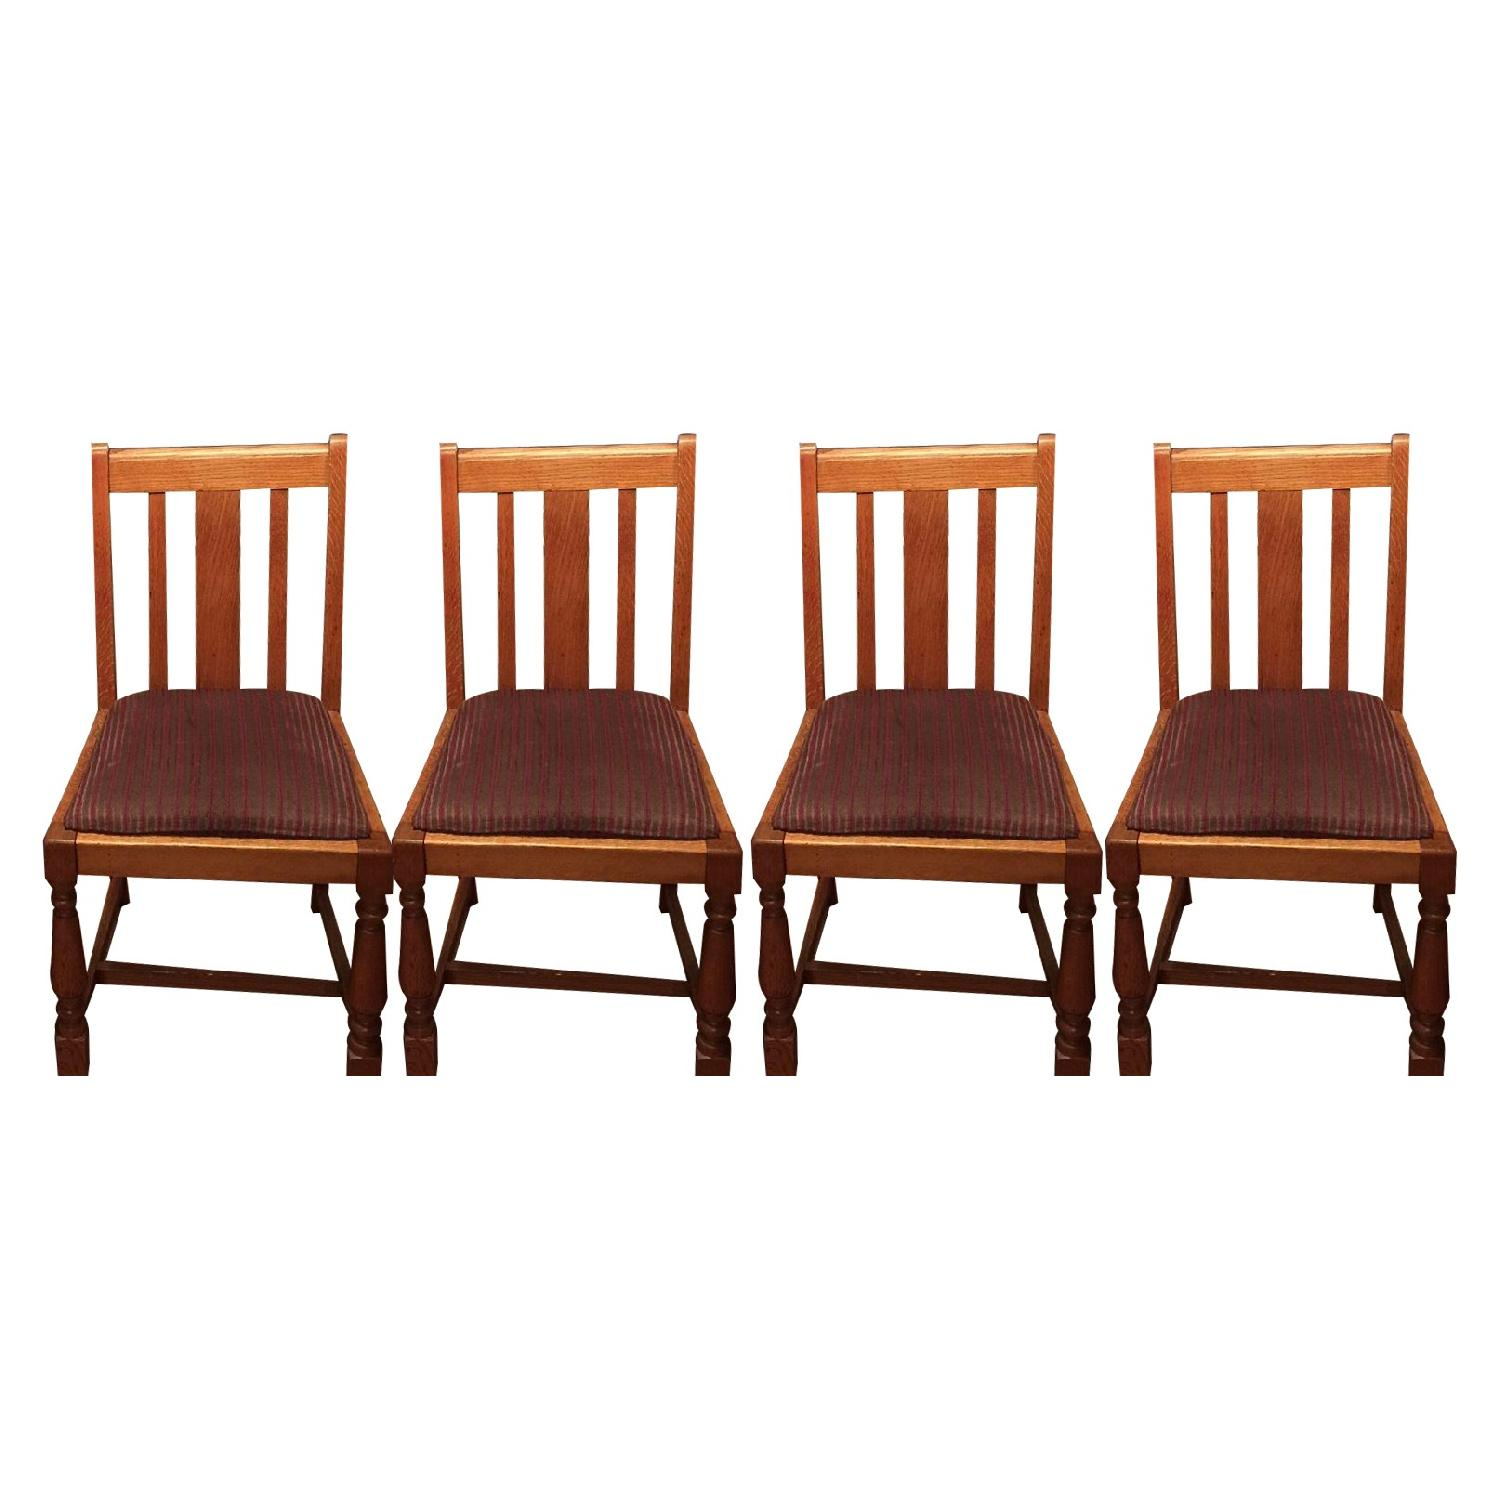 Antique European Tiger Oak Dining Chairs - image-0